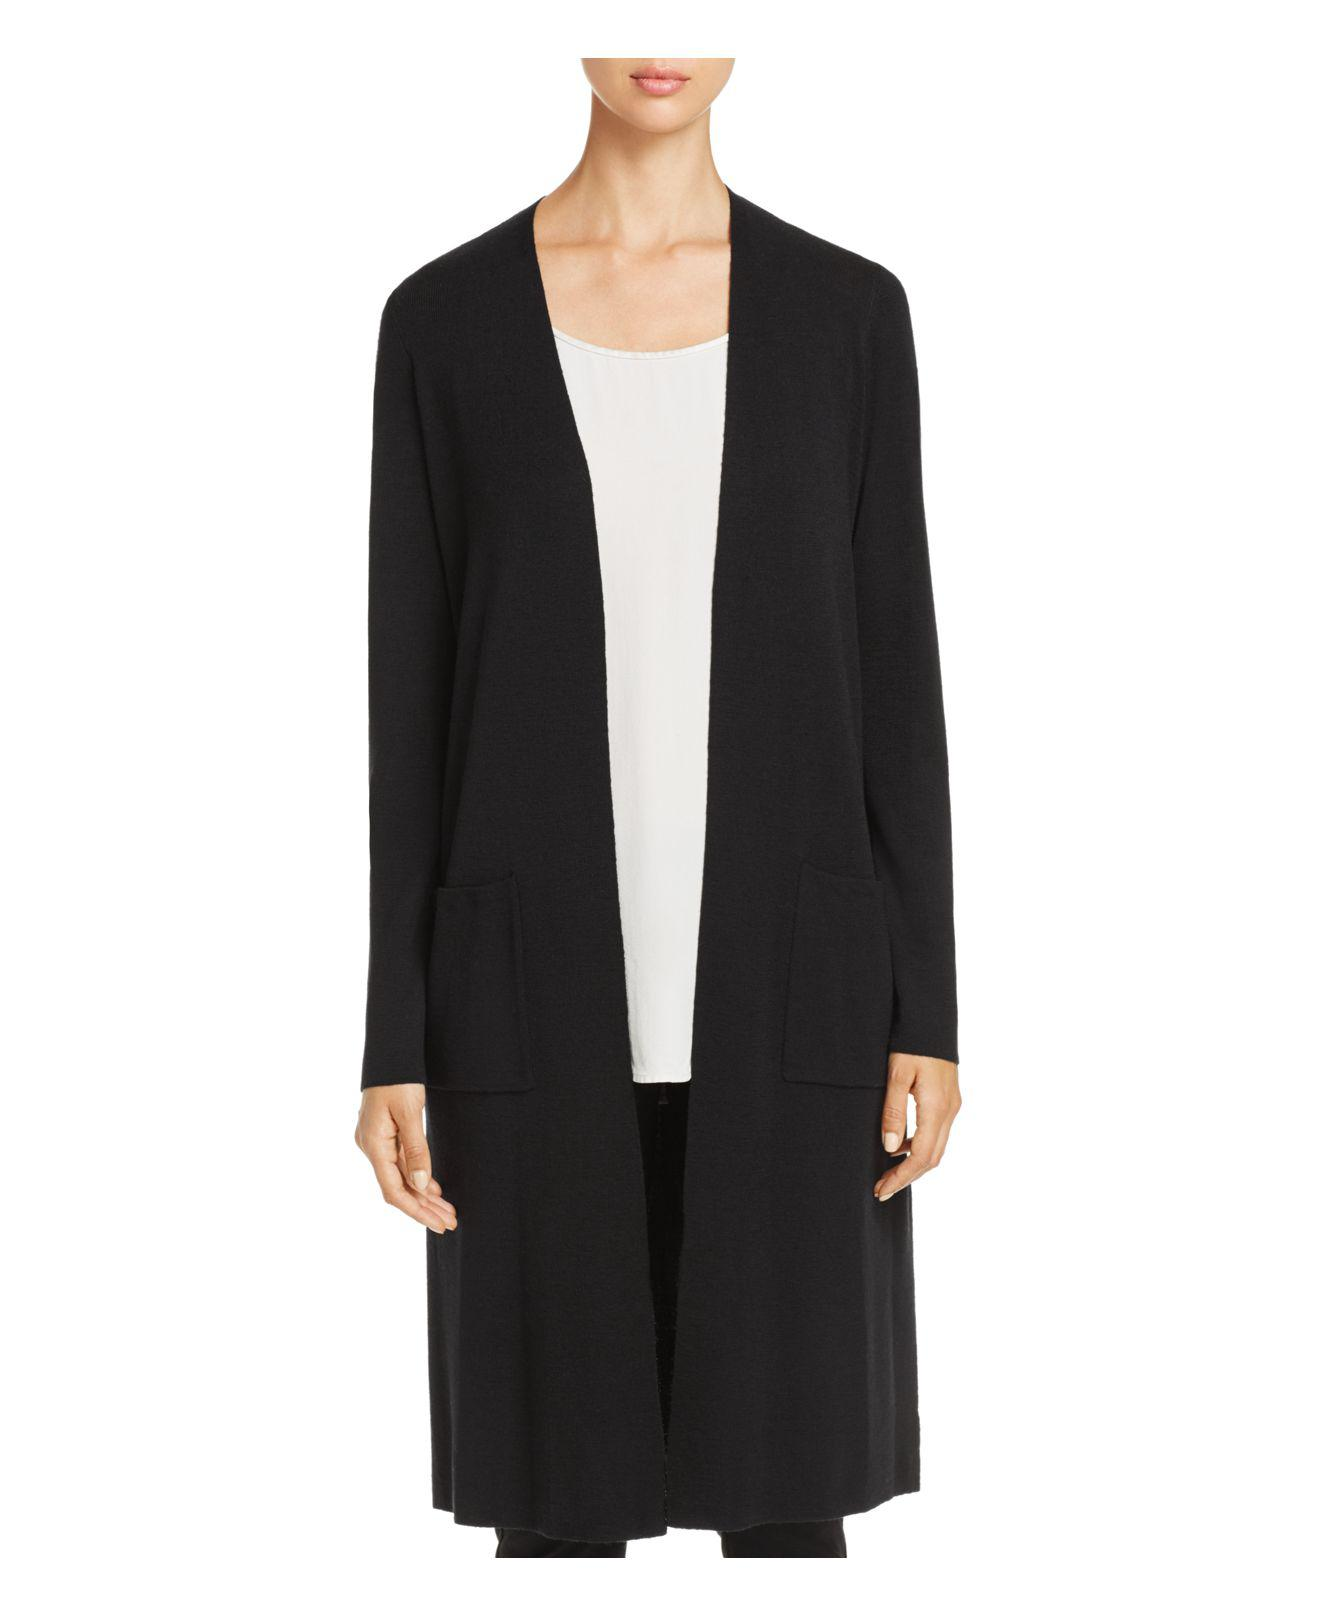 Eileen fisher Merino Wool Duster Cardigan in Black | Lyst